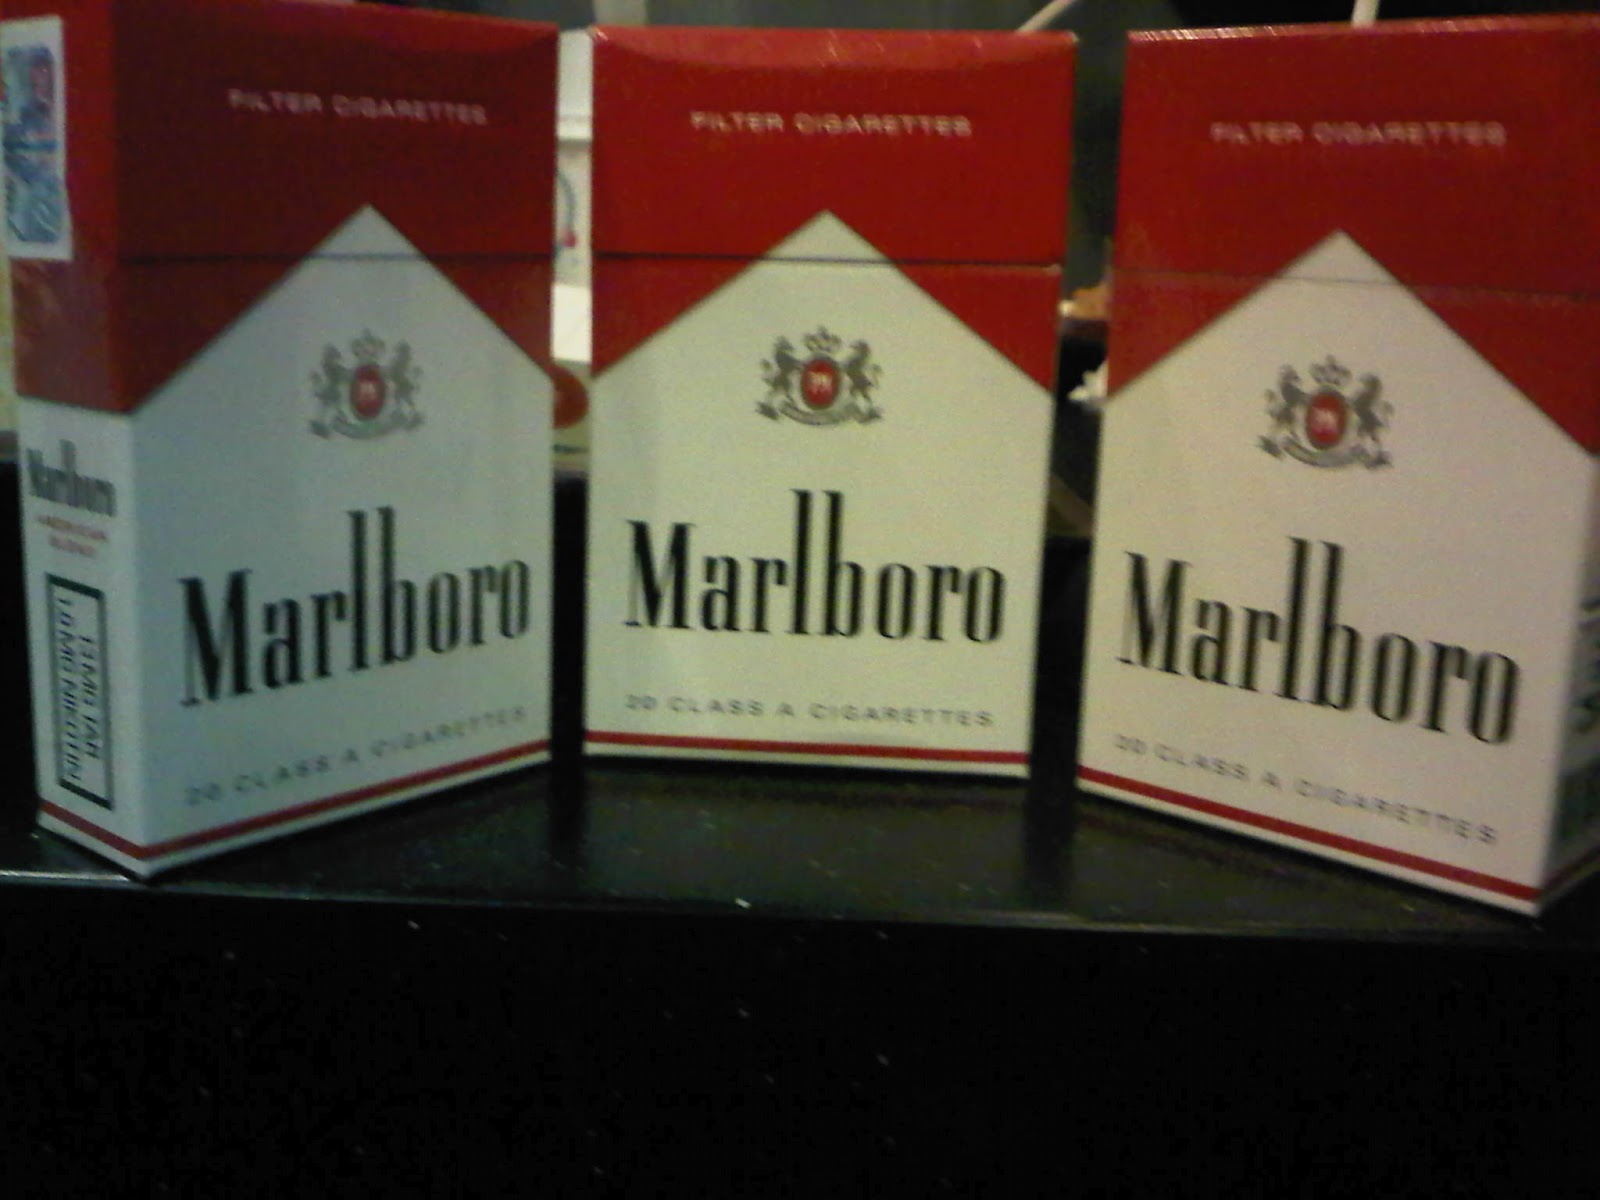 Marlboro Skyline The gallery for -->...